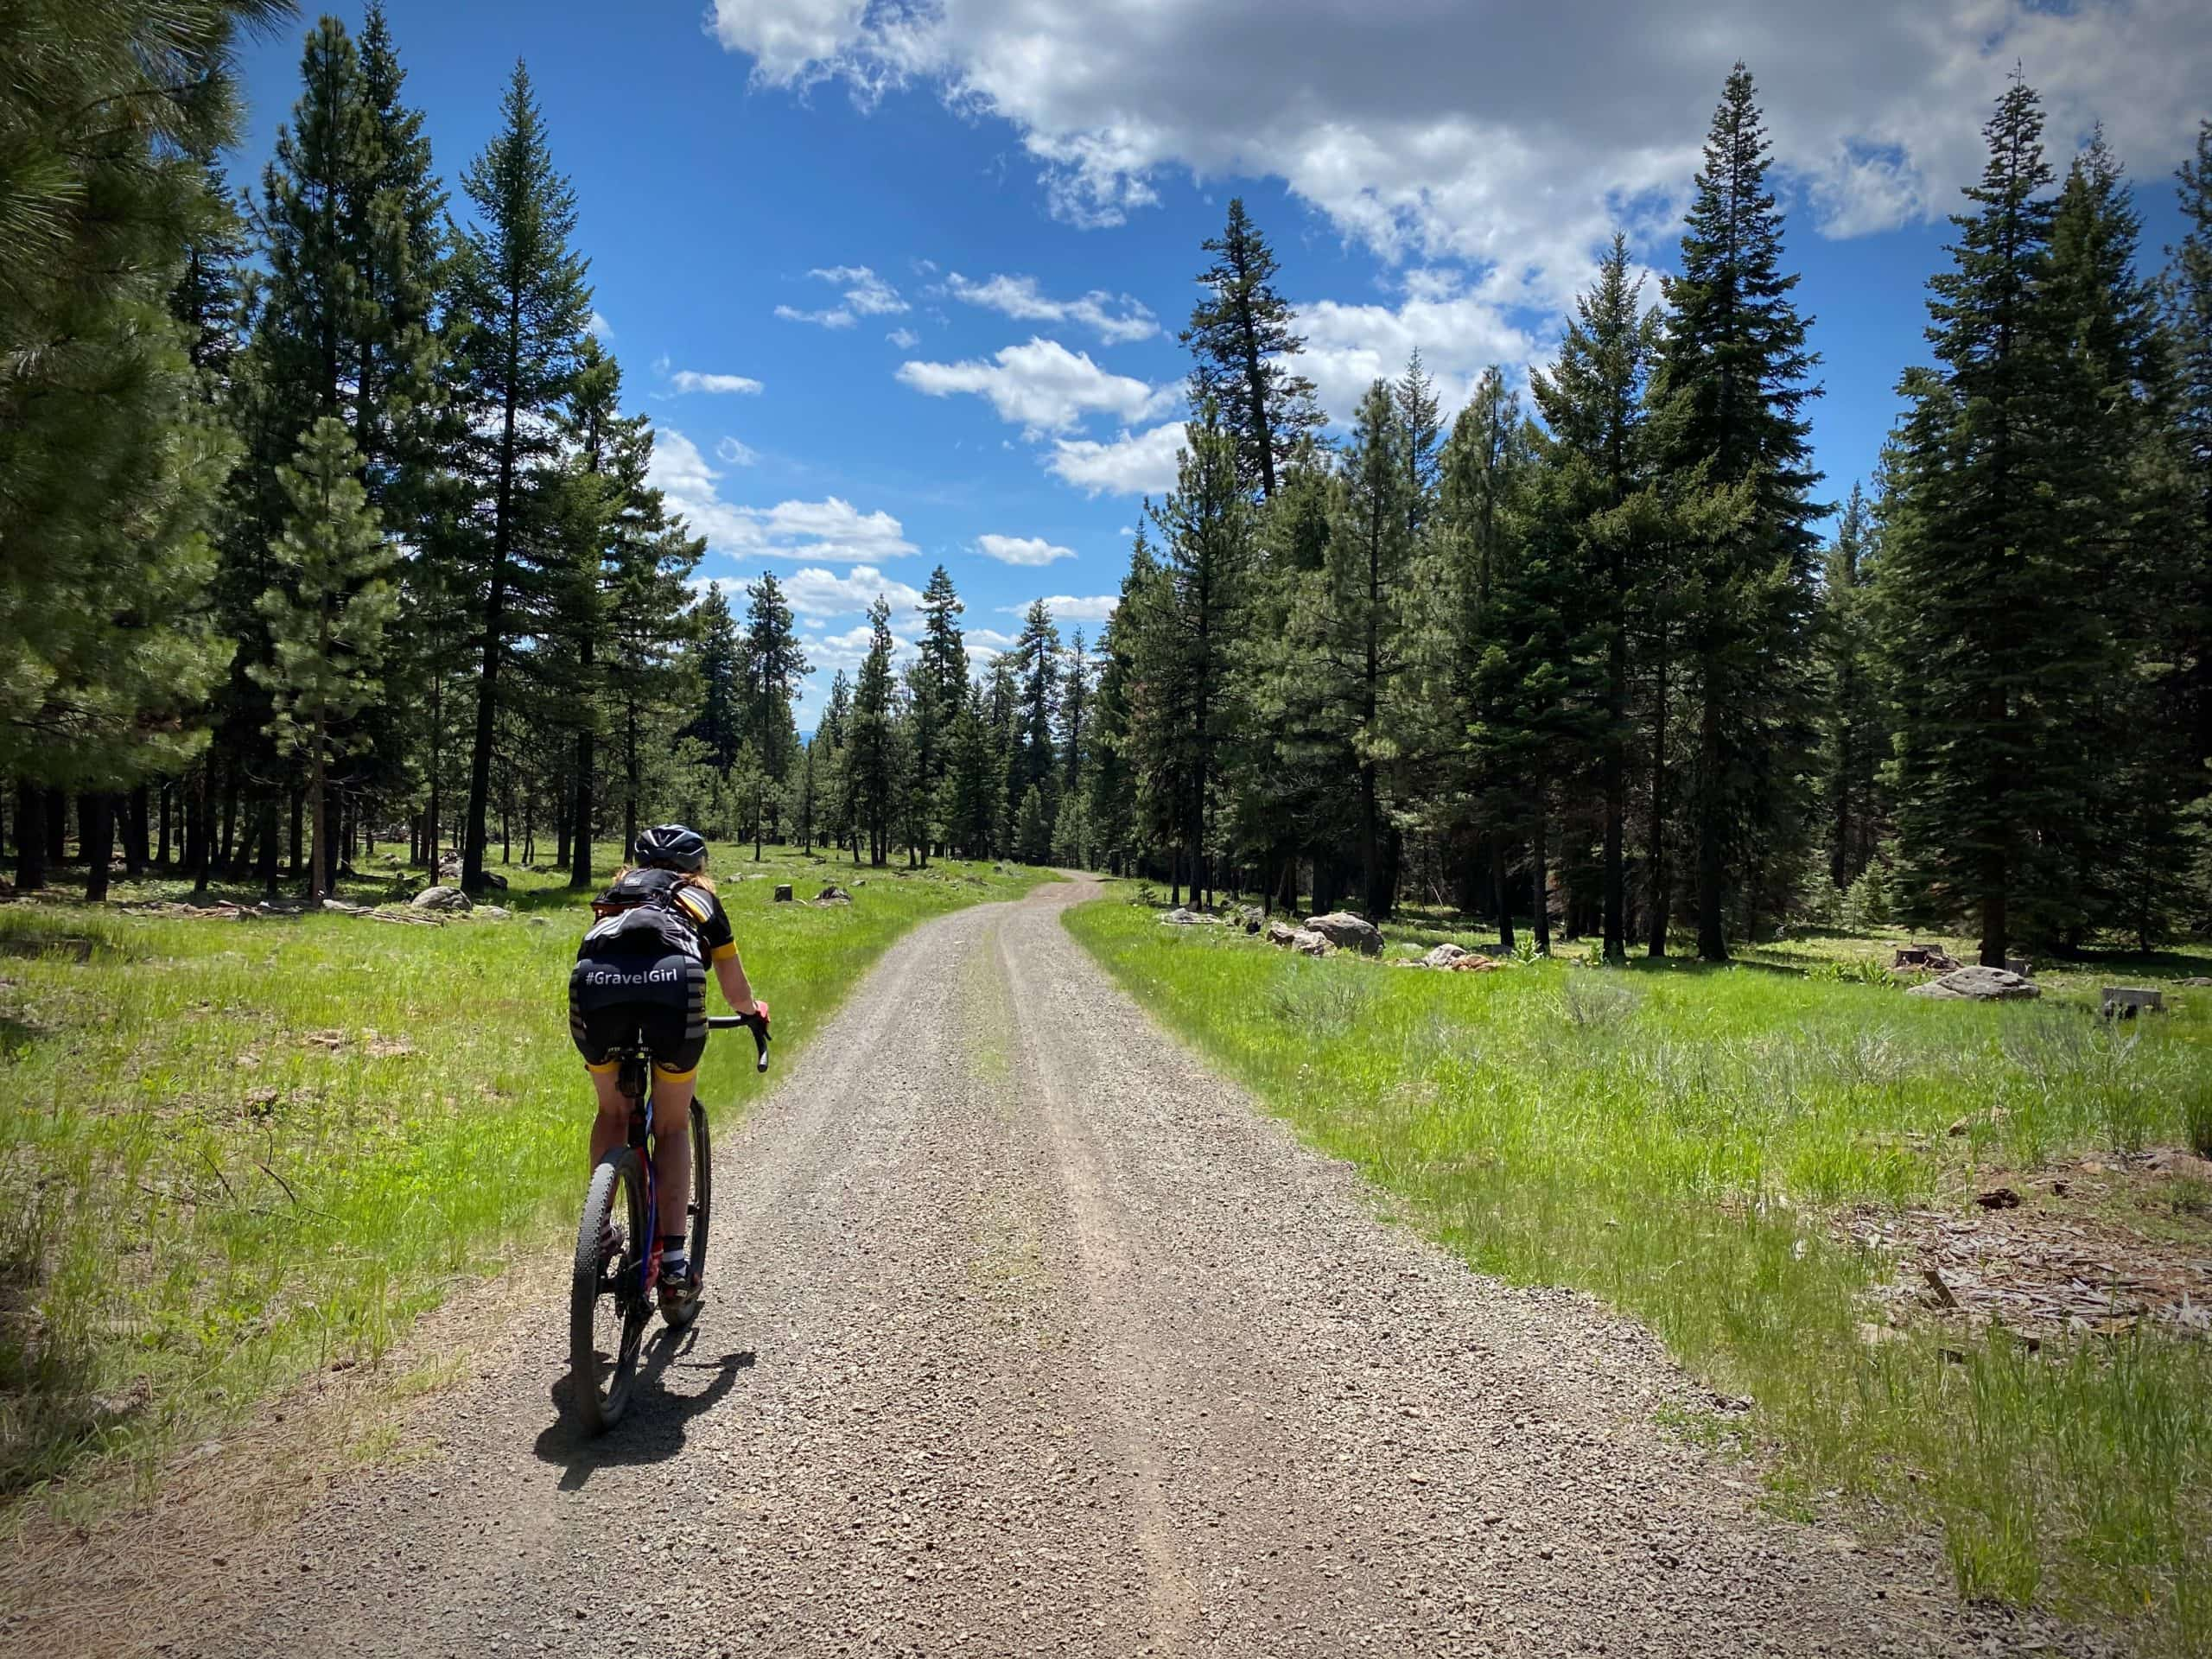 Cyclist on gravel road near the Black Canyon Wilderness in Oregon.